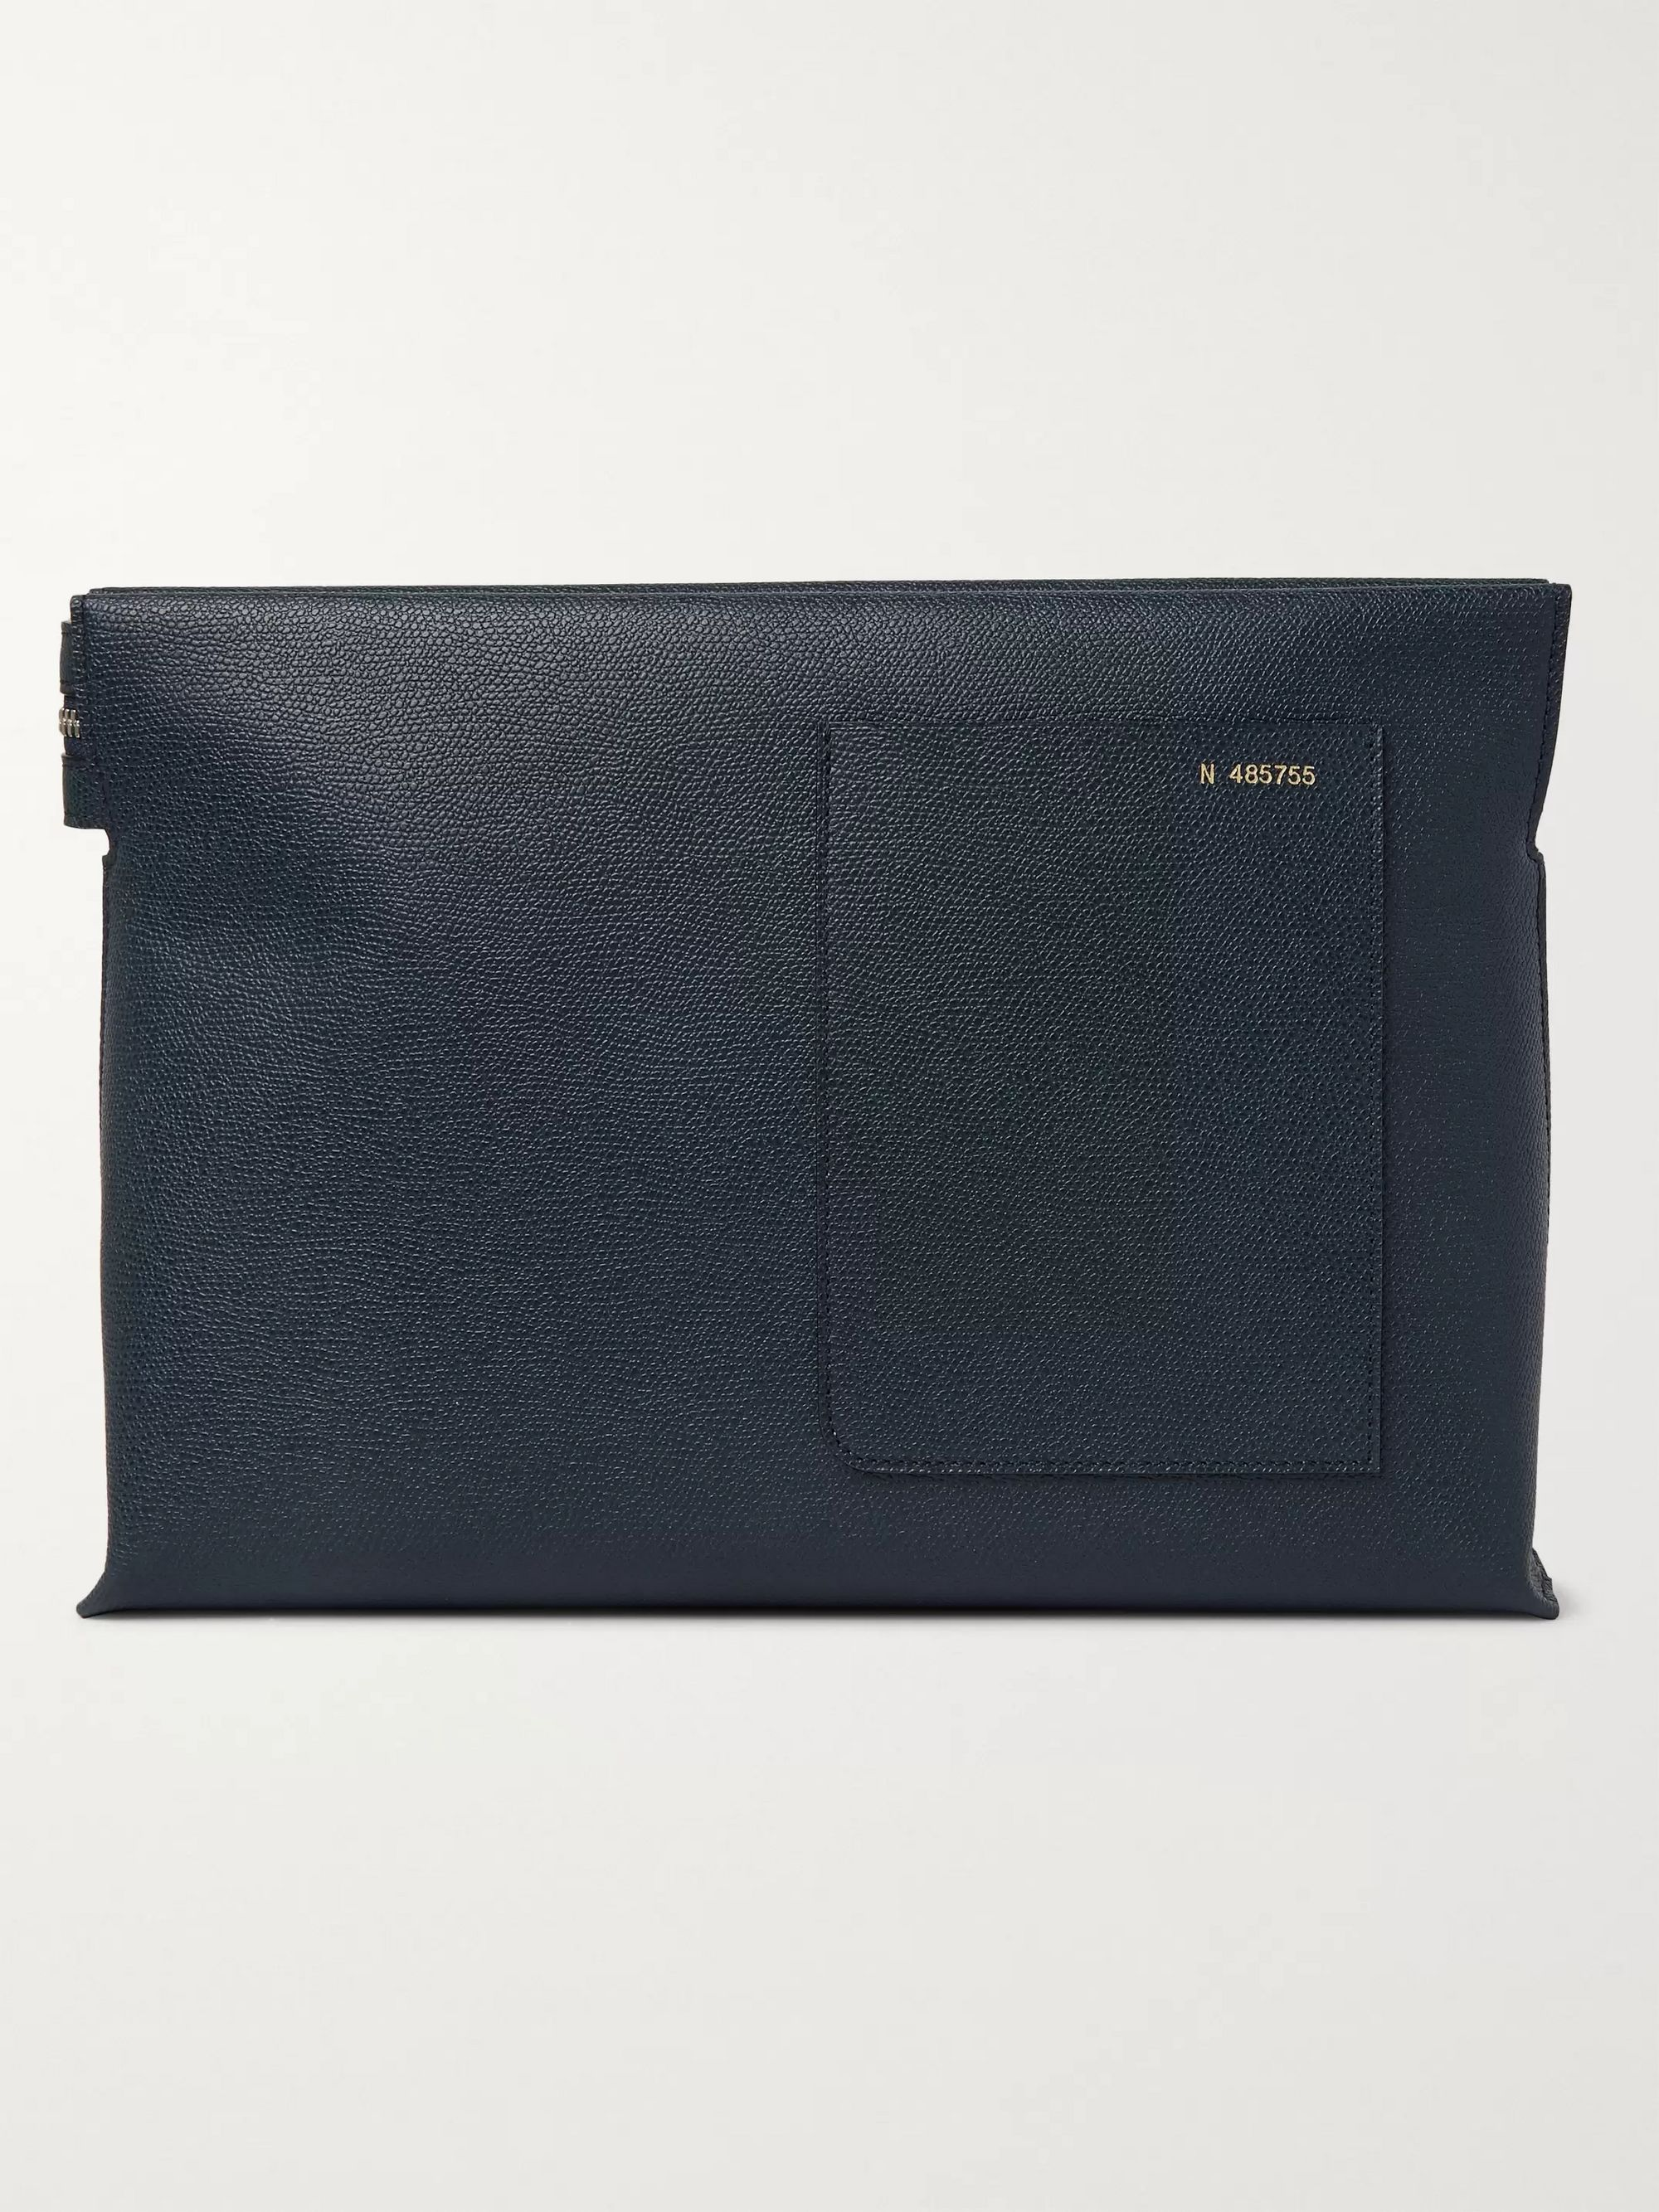 Valextra Pebble-Grain Leather Pouch